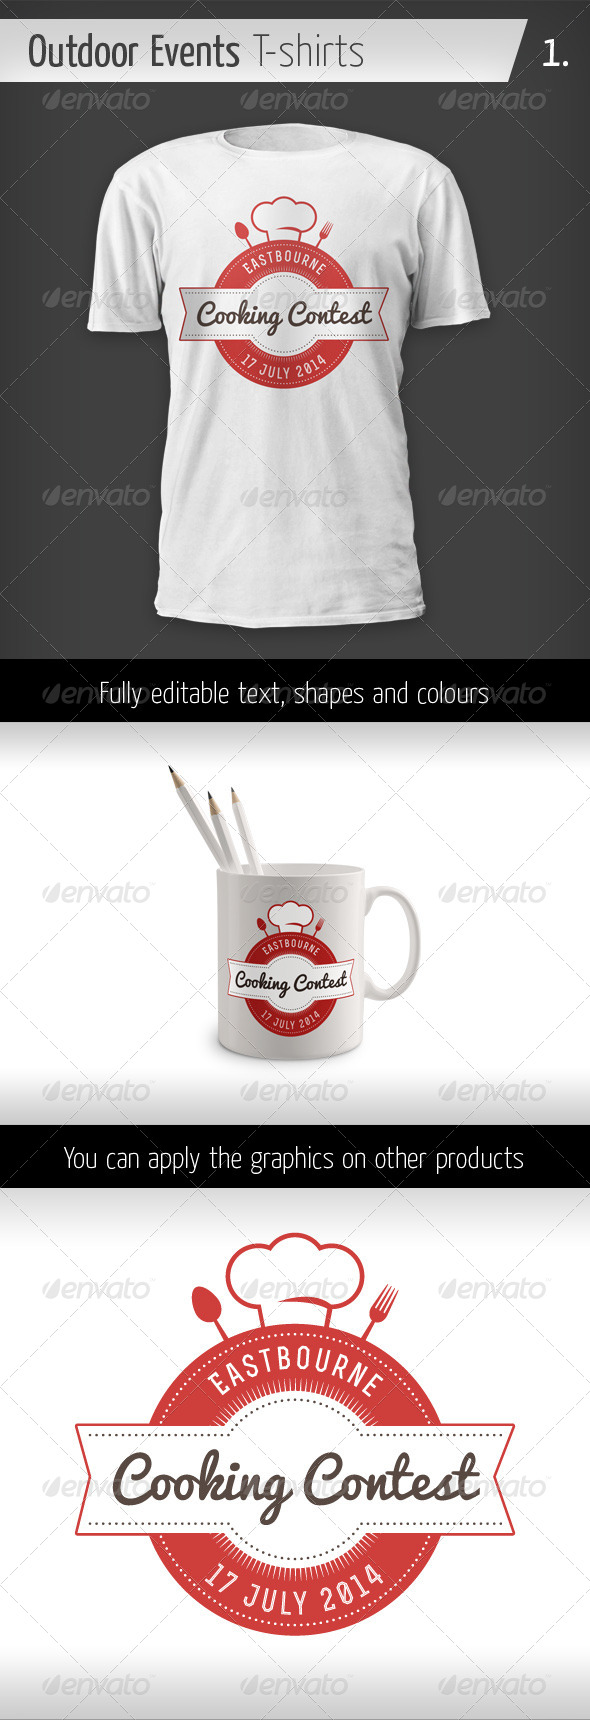 Outdoor Events T-shirts - Cooking contest - Events T-Shirts